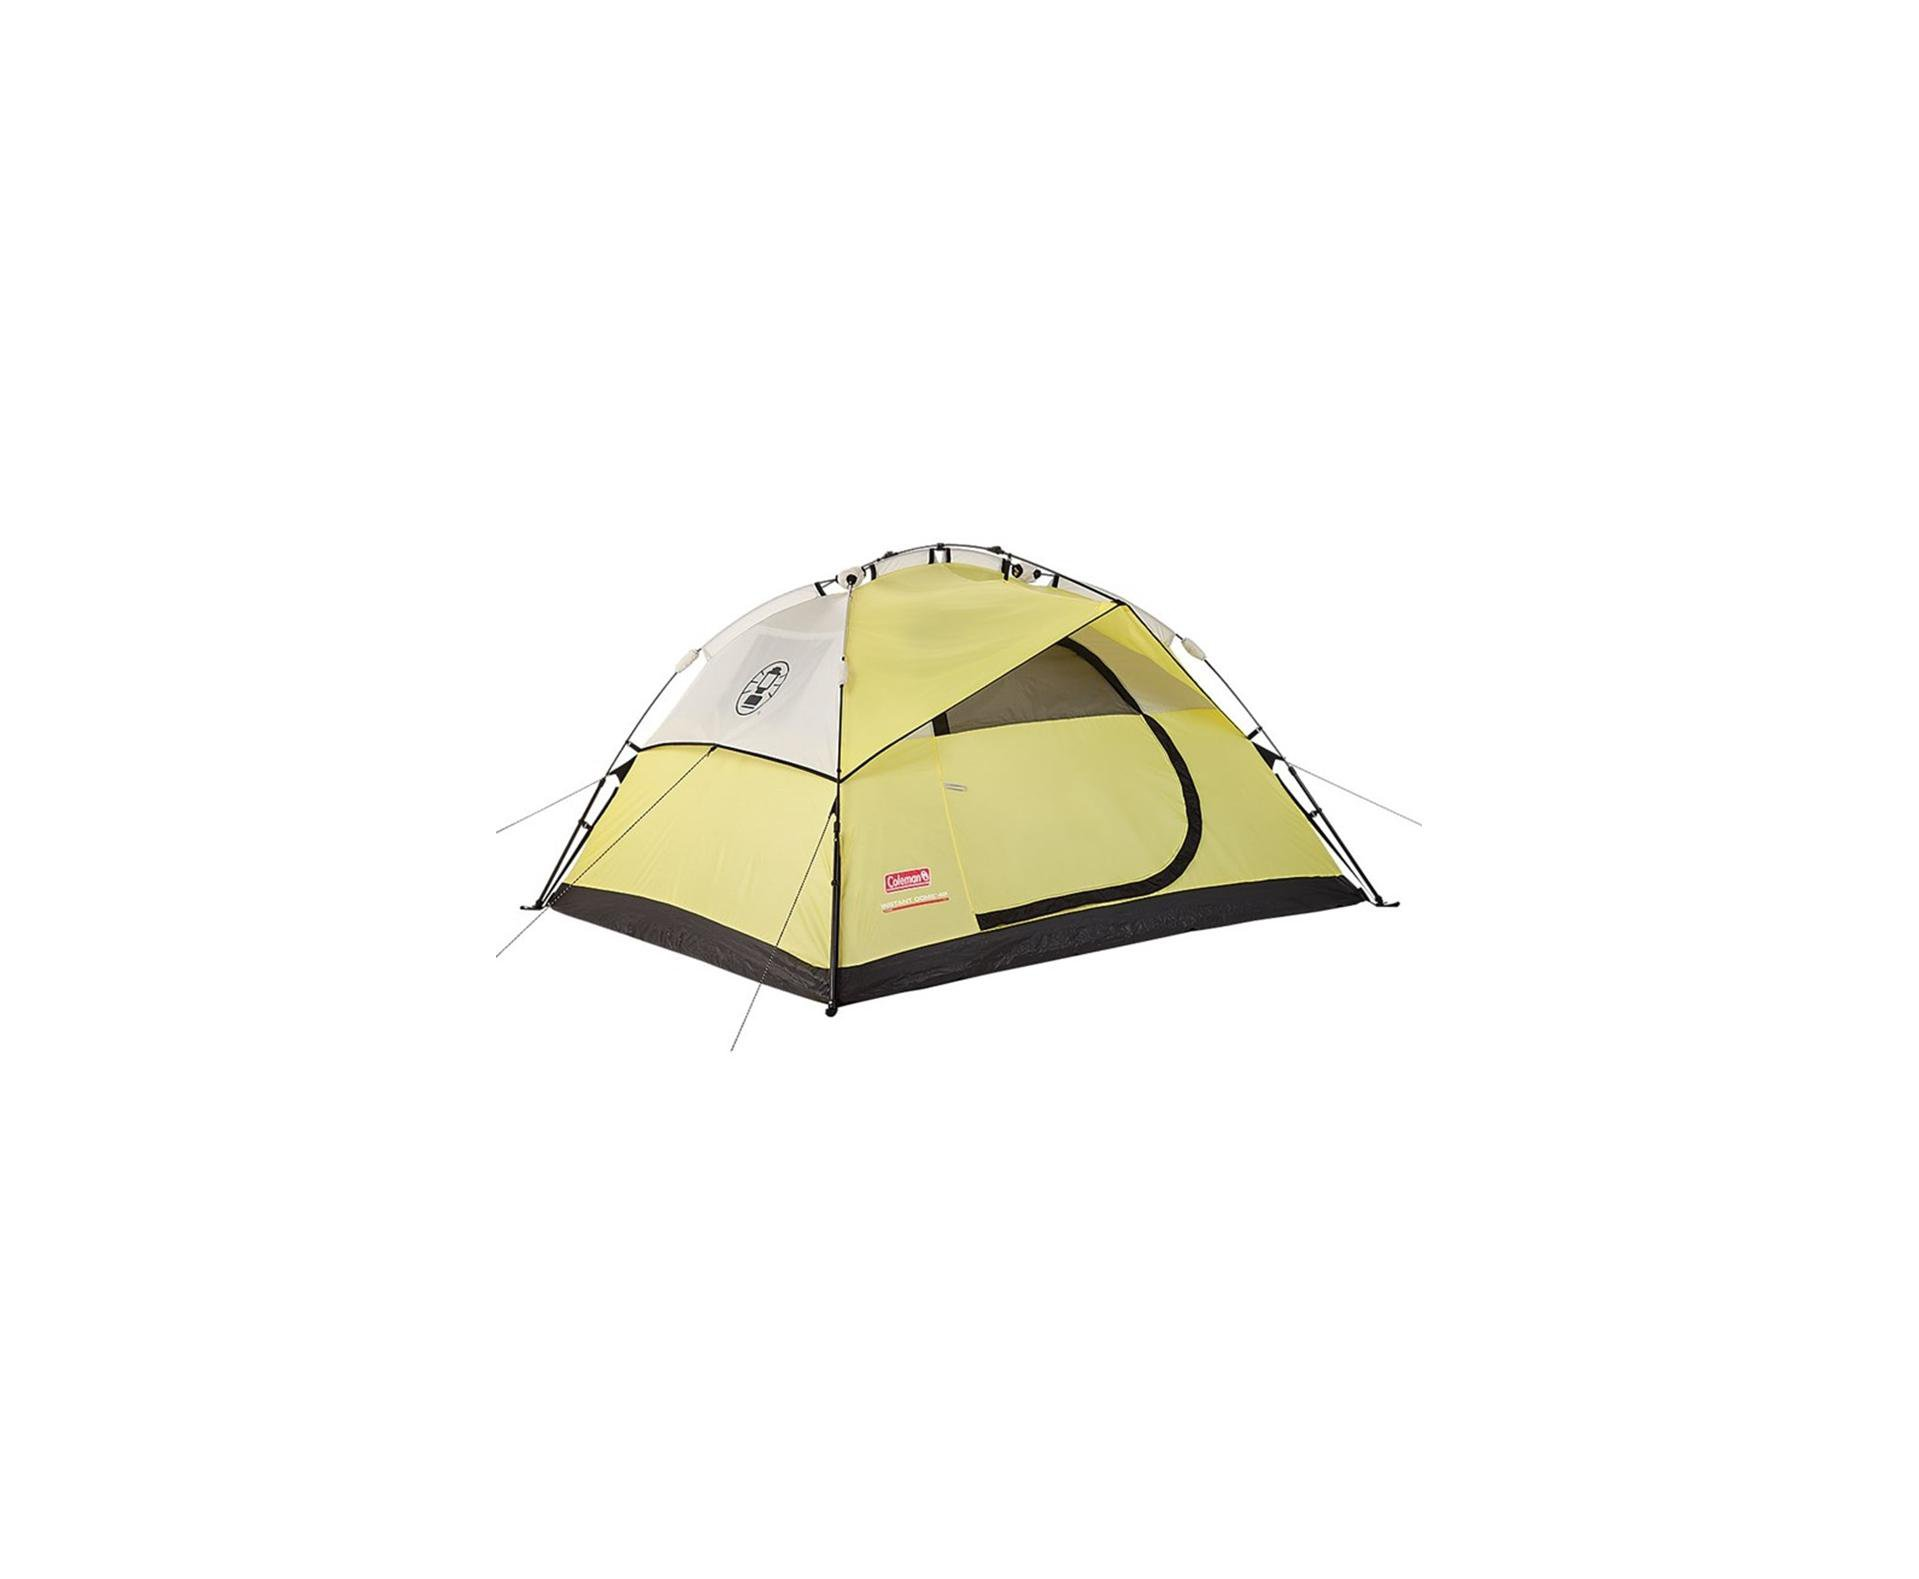 Barraca Instant Dome 4p - Coleman